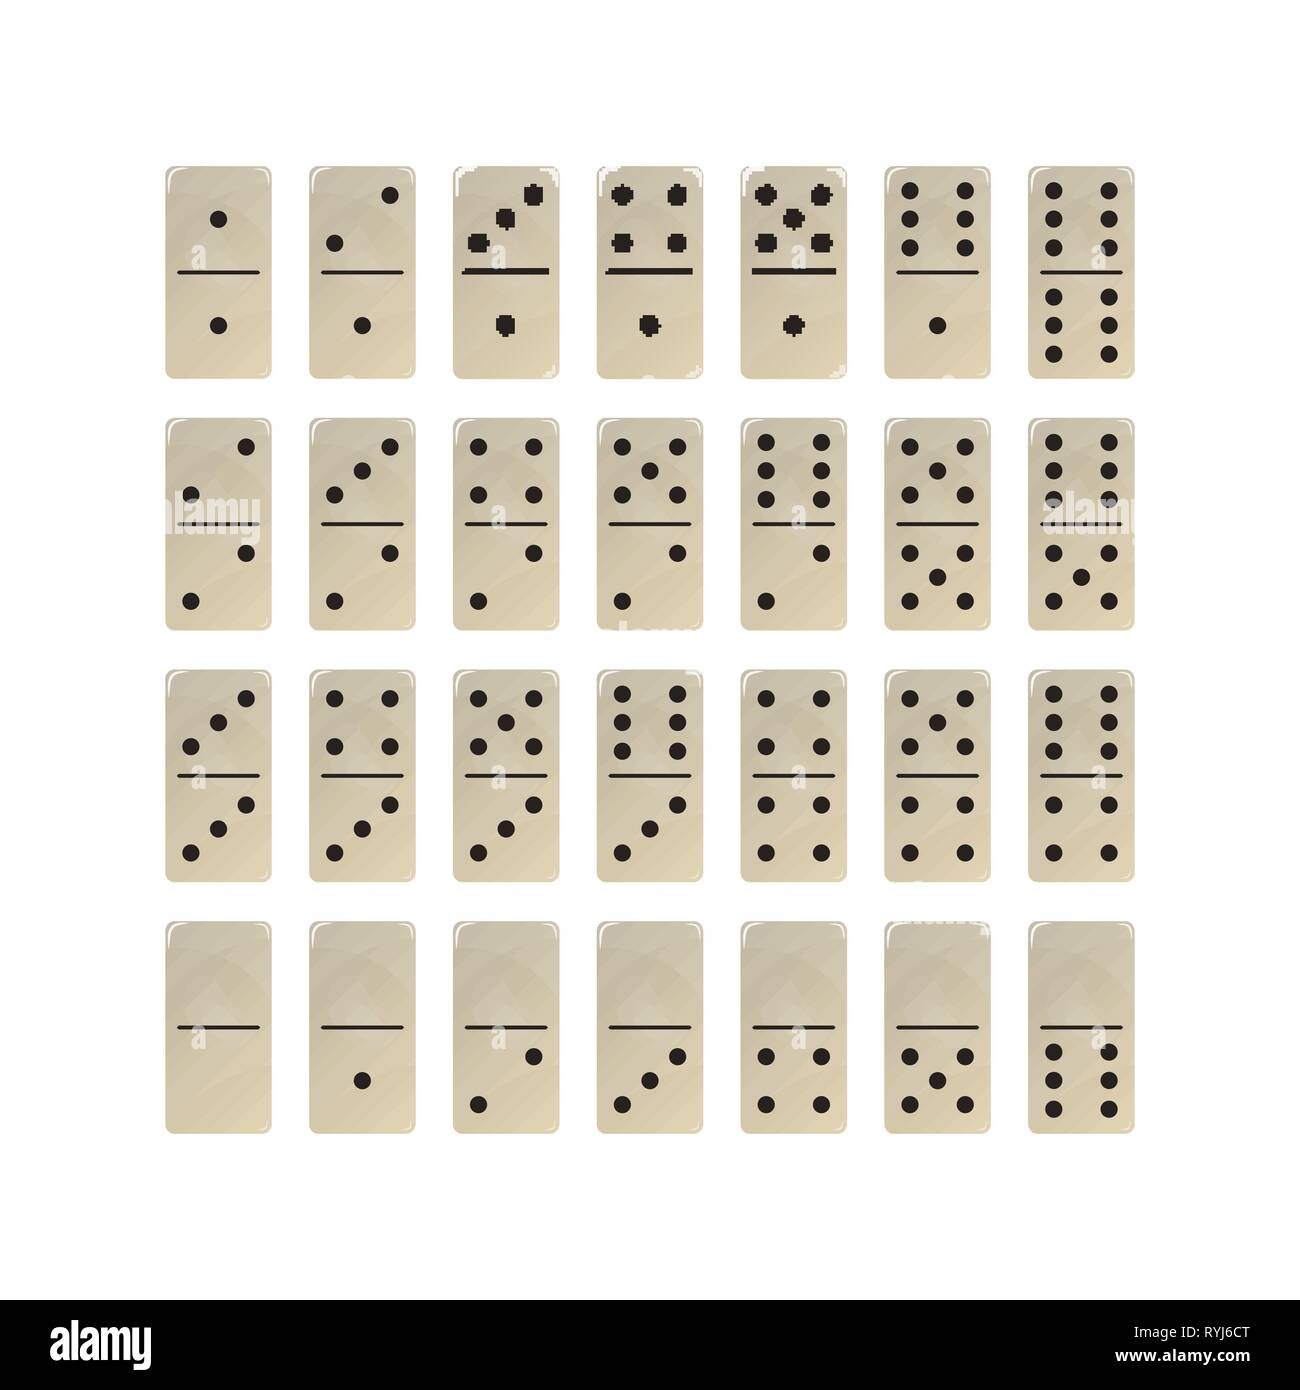 The game of dominoes. Set of white blocks. Vector illustration domino. - Stock Vector